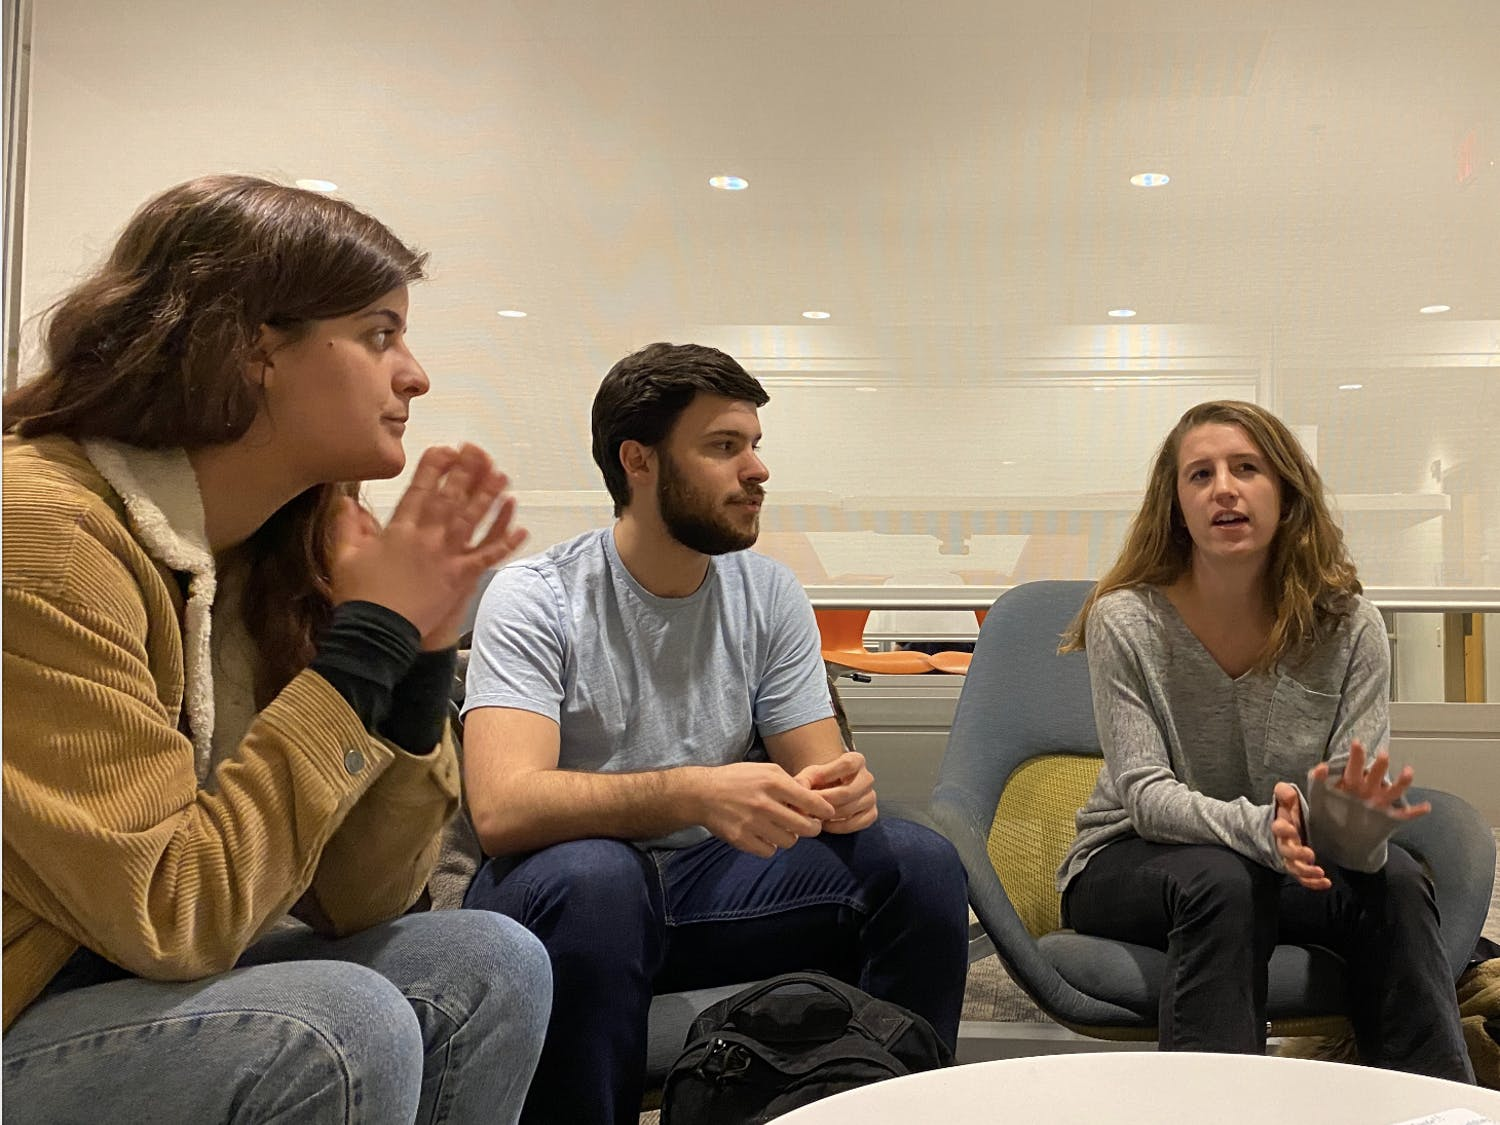 """UNC seniors Emily Shaljian, Ross DiBetta and Molly Crosswell are hoping to go on the biennial challenge, """"Red Bull Can You Make It,"""" set in early May. The competition flies selected teams to one of five cities in Europe. From there, each team must travel to Berlin without money or personal phones. For seven days, they are reliant solely on 24 cans of Red Bull as currency."""